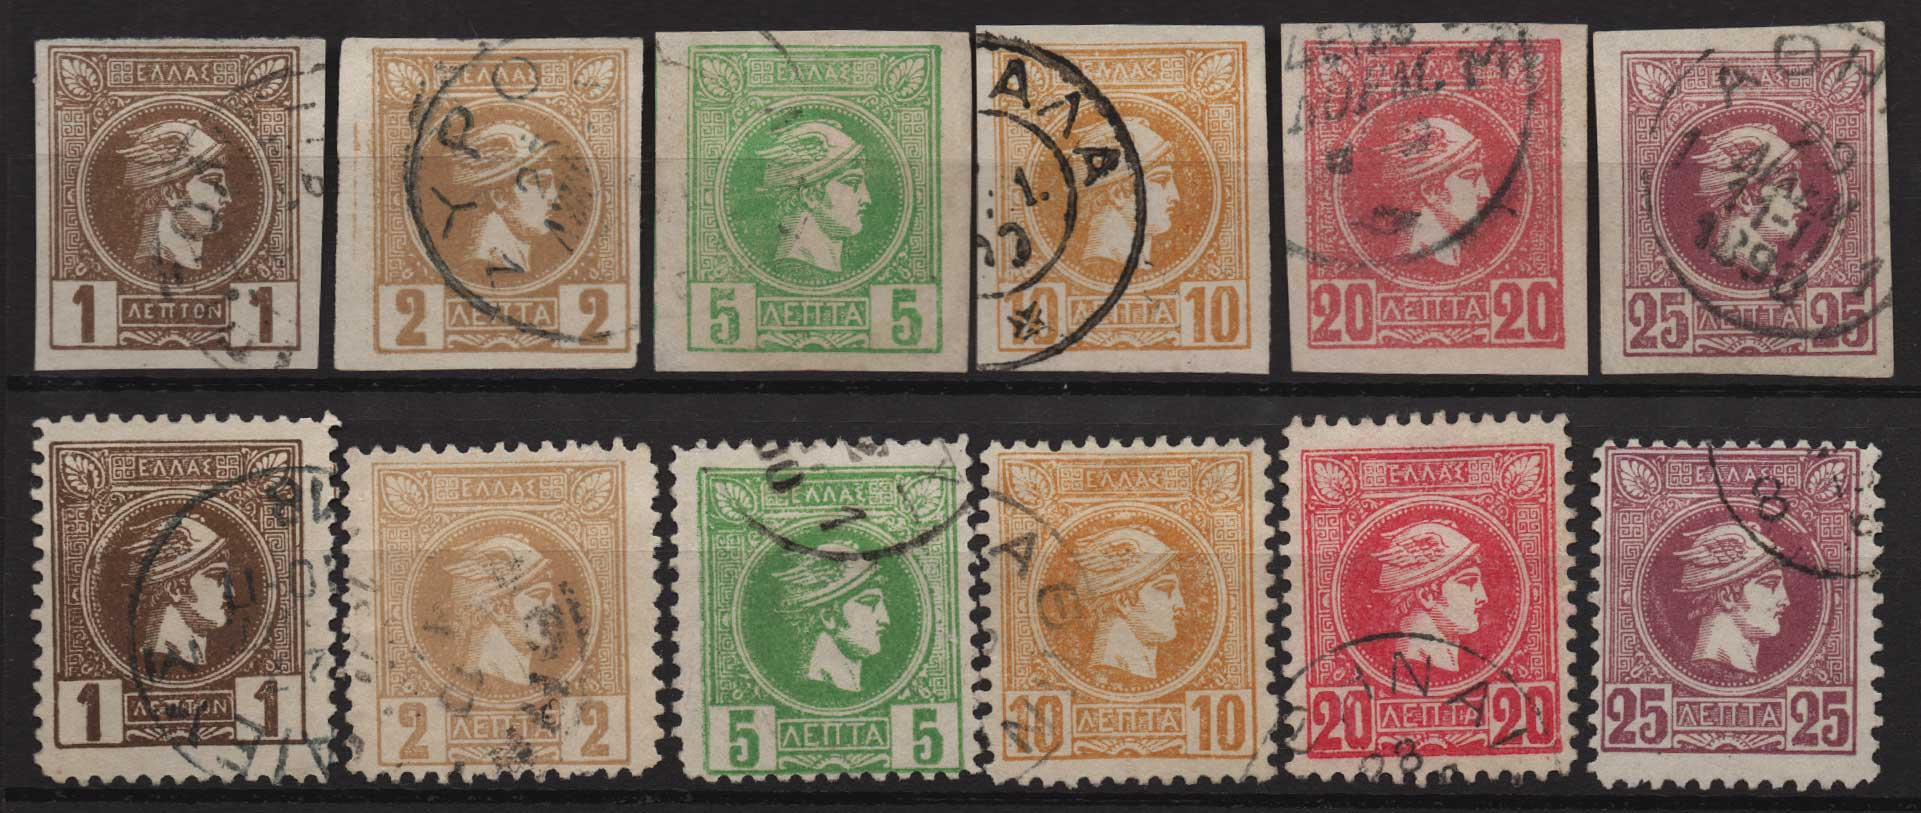 Lot 452 - -  SMALL HERMES HEAD ATHENSPRINTING - 3rd PERIOD -  Athens Auctions Public Auction 83 General Stamp Sale